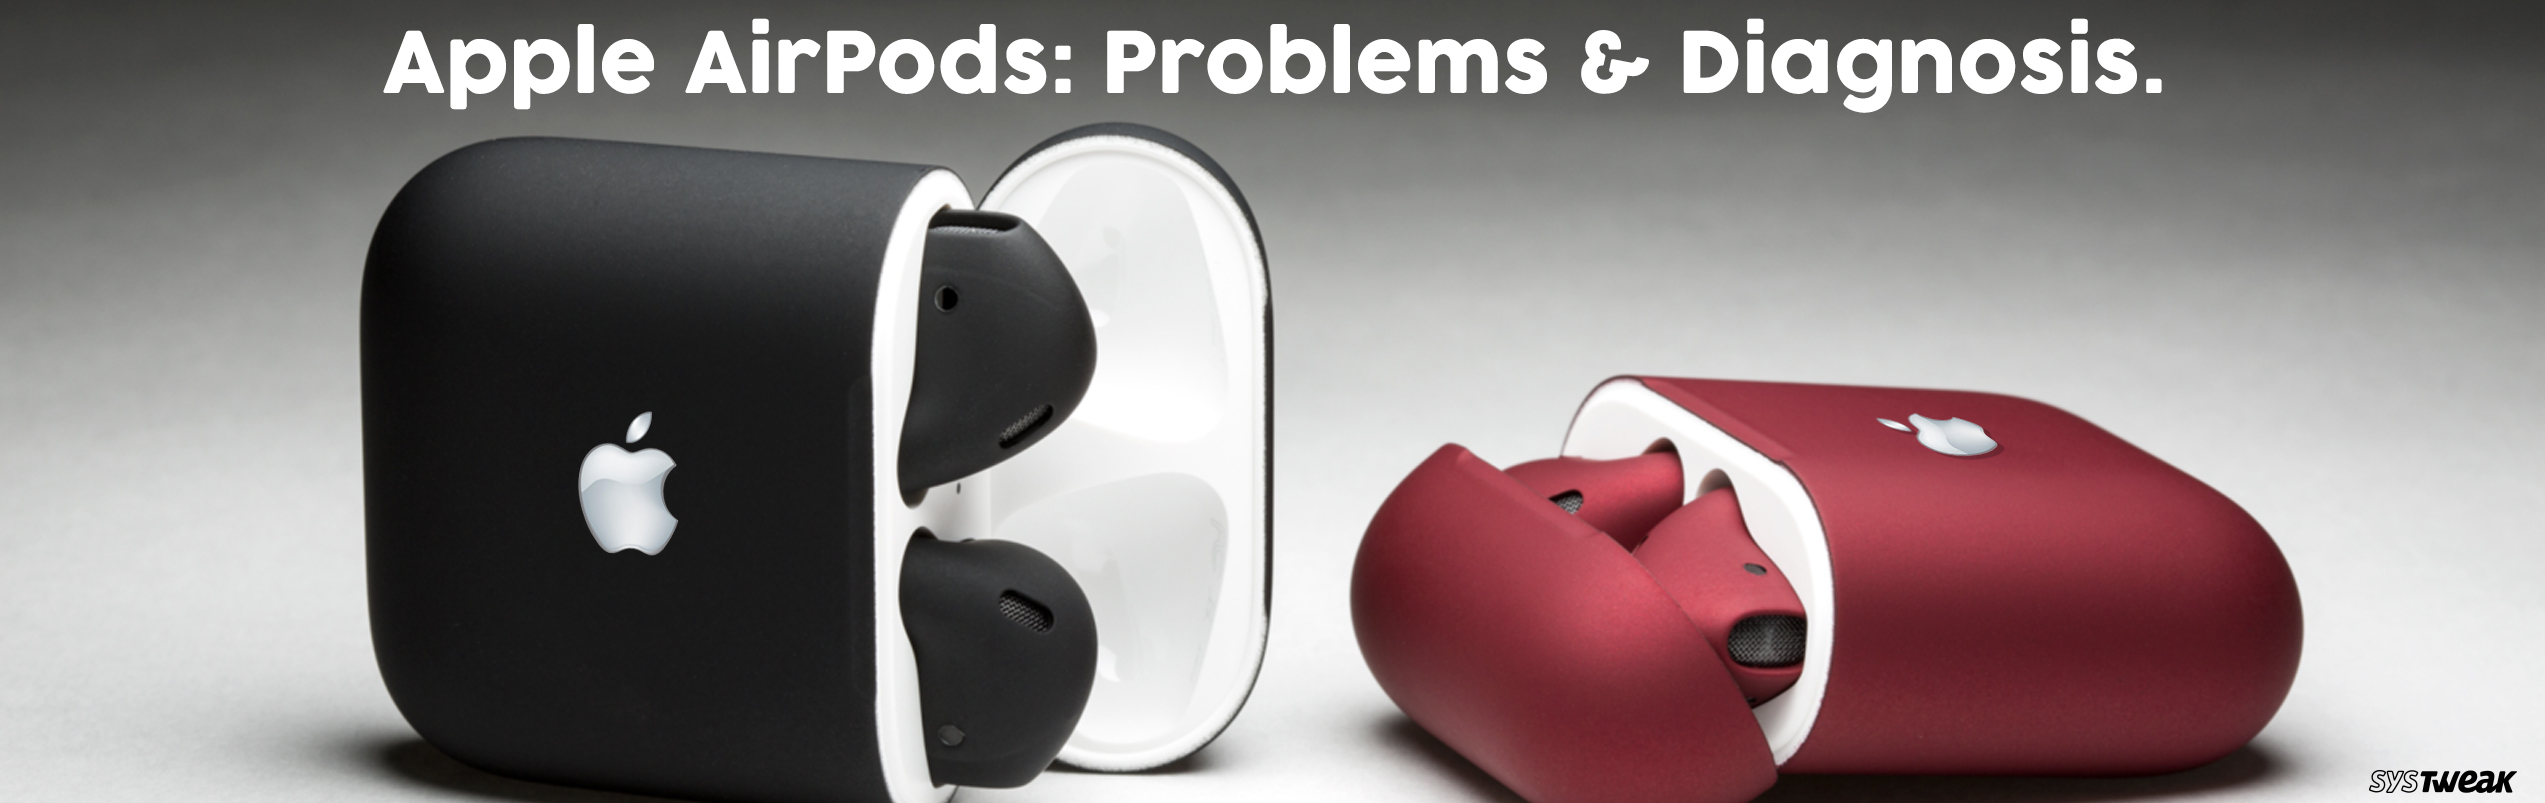 Apple AirPods: Common Problems And Their Diagnosis